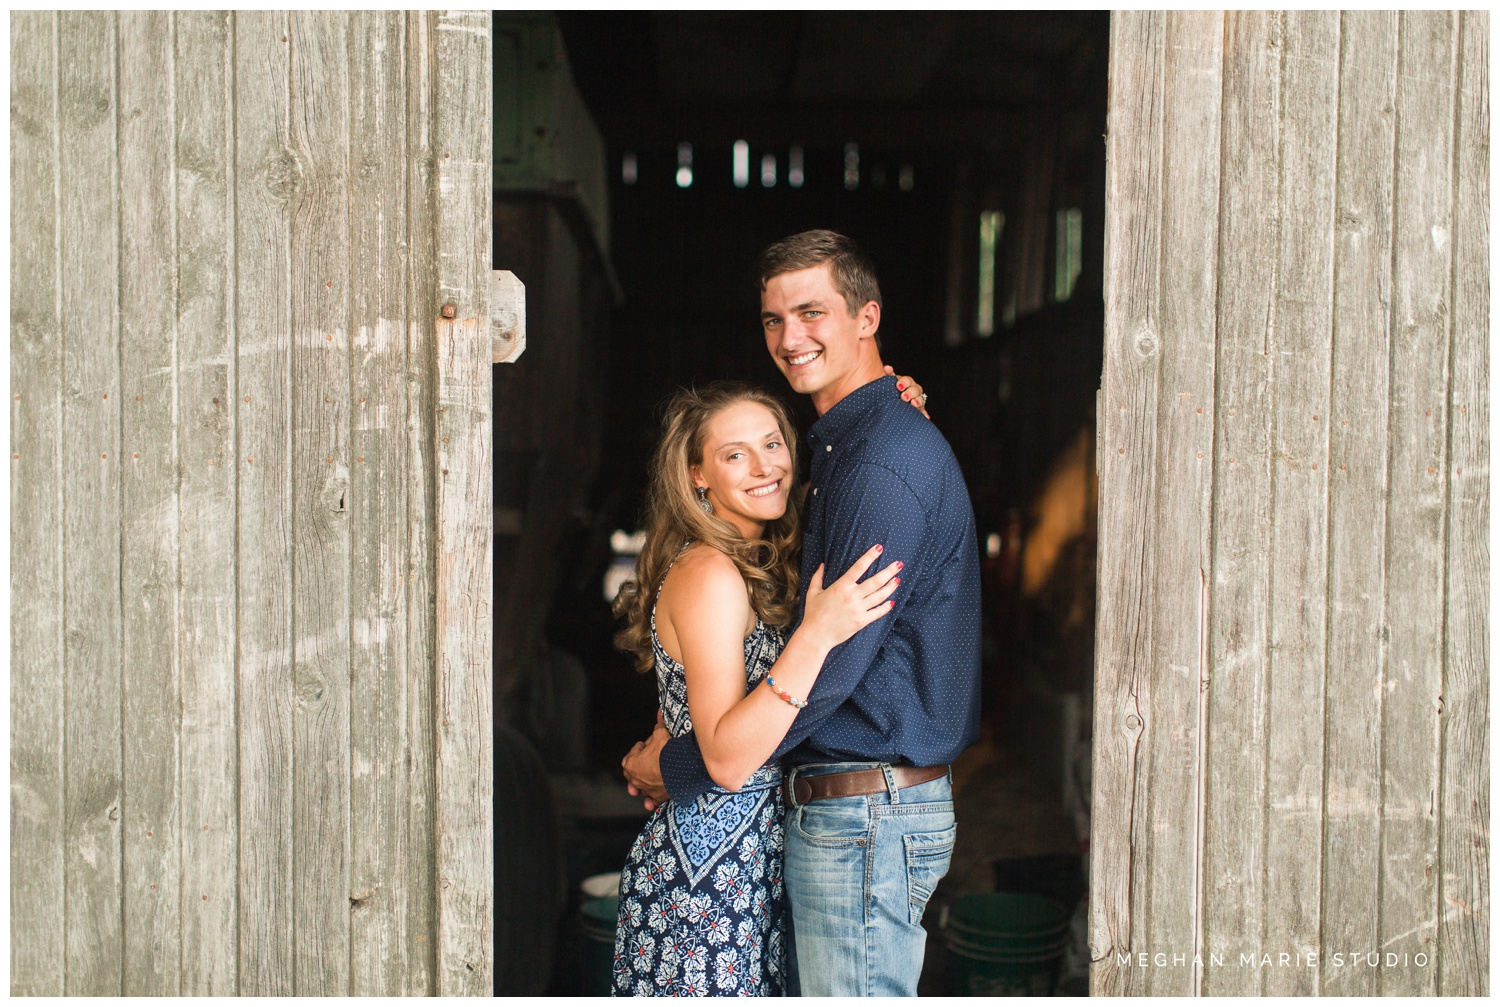 meghan marie studio wedding photographer ohio troy dayton columbus small town rustic rural farm cows russia shelby county barns antique vintage engagement lauren heaton_0562.jpg